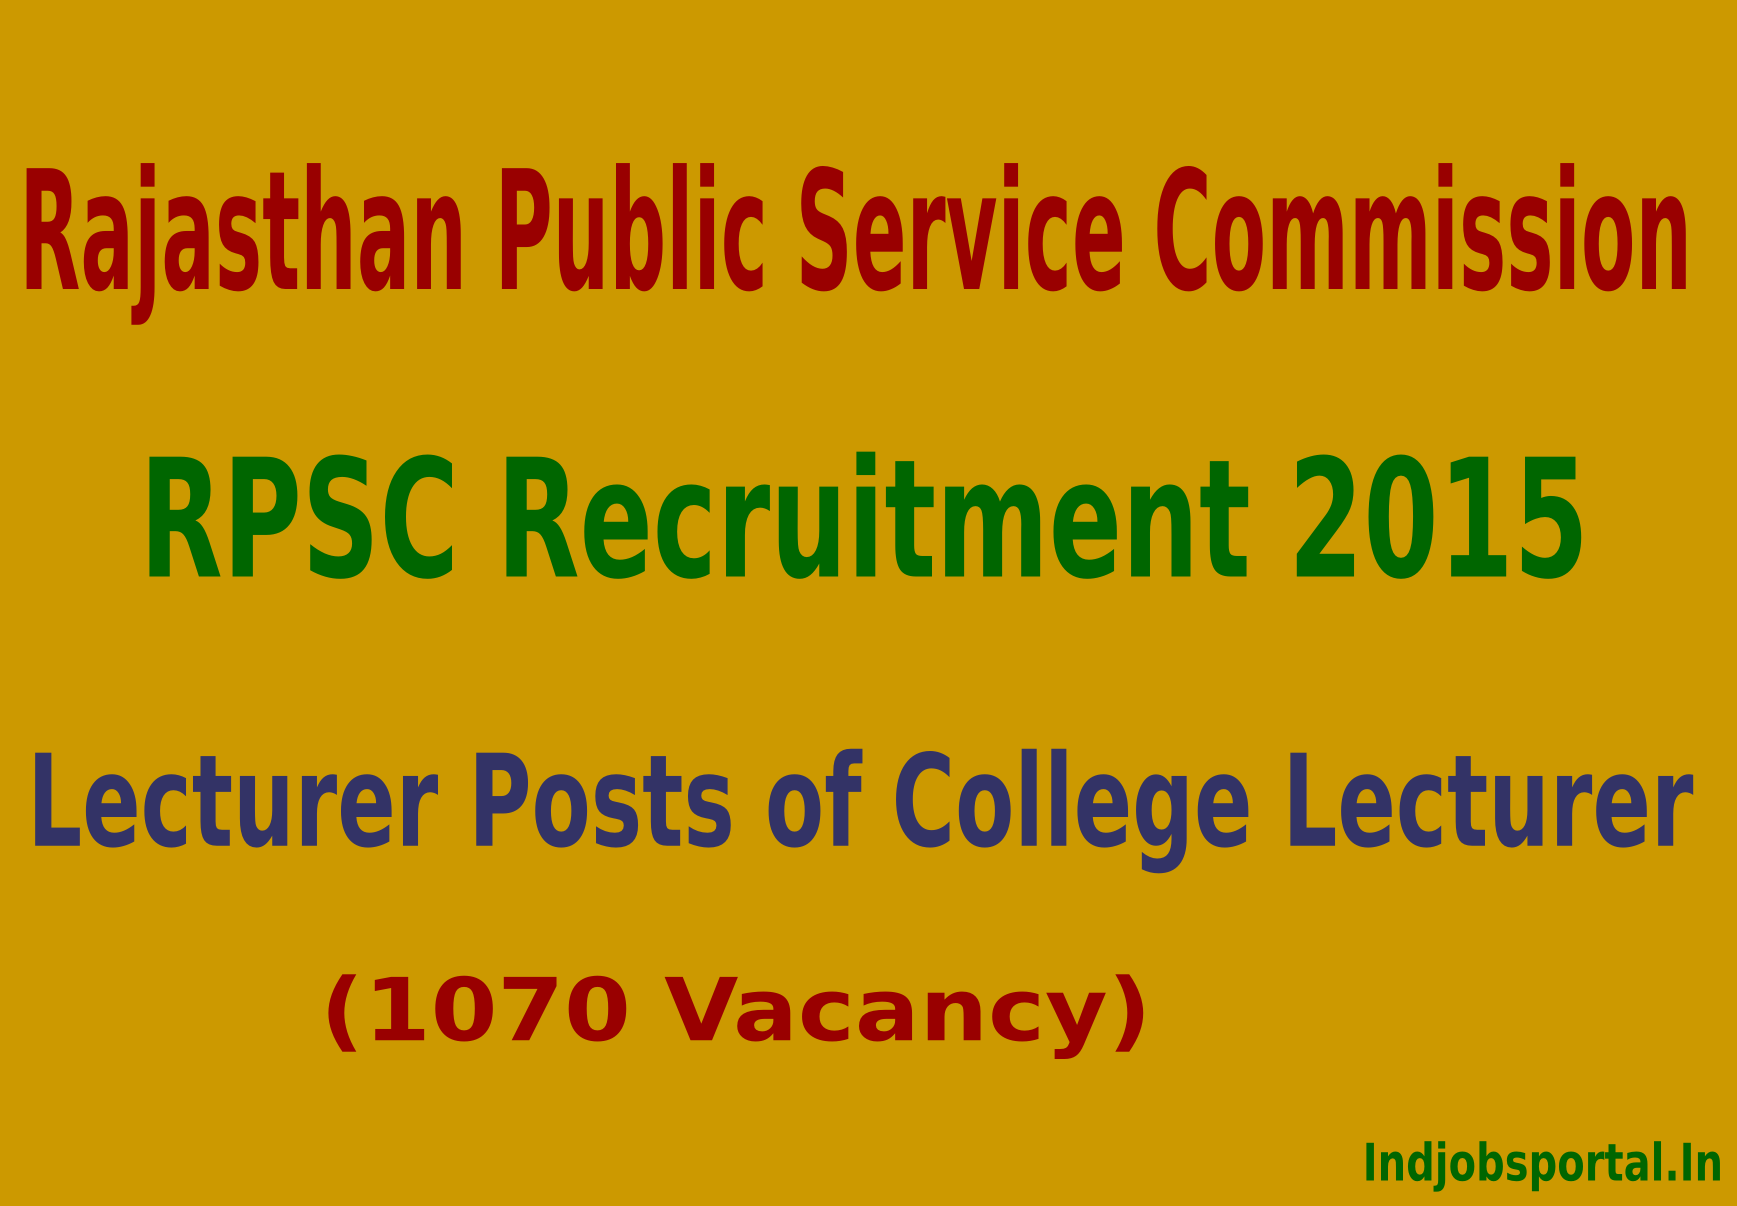 RPSC Recruitment 2015 Apply Online For 1070 Lecturer Posts